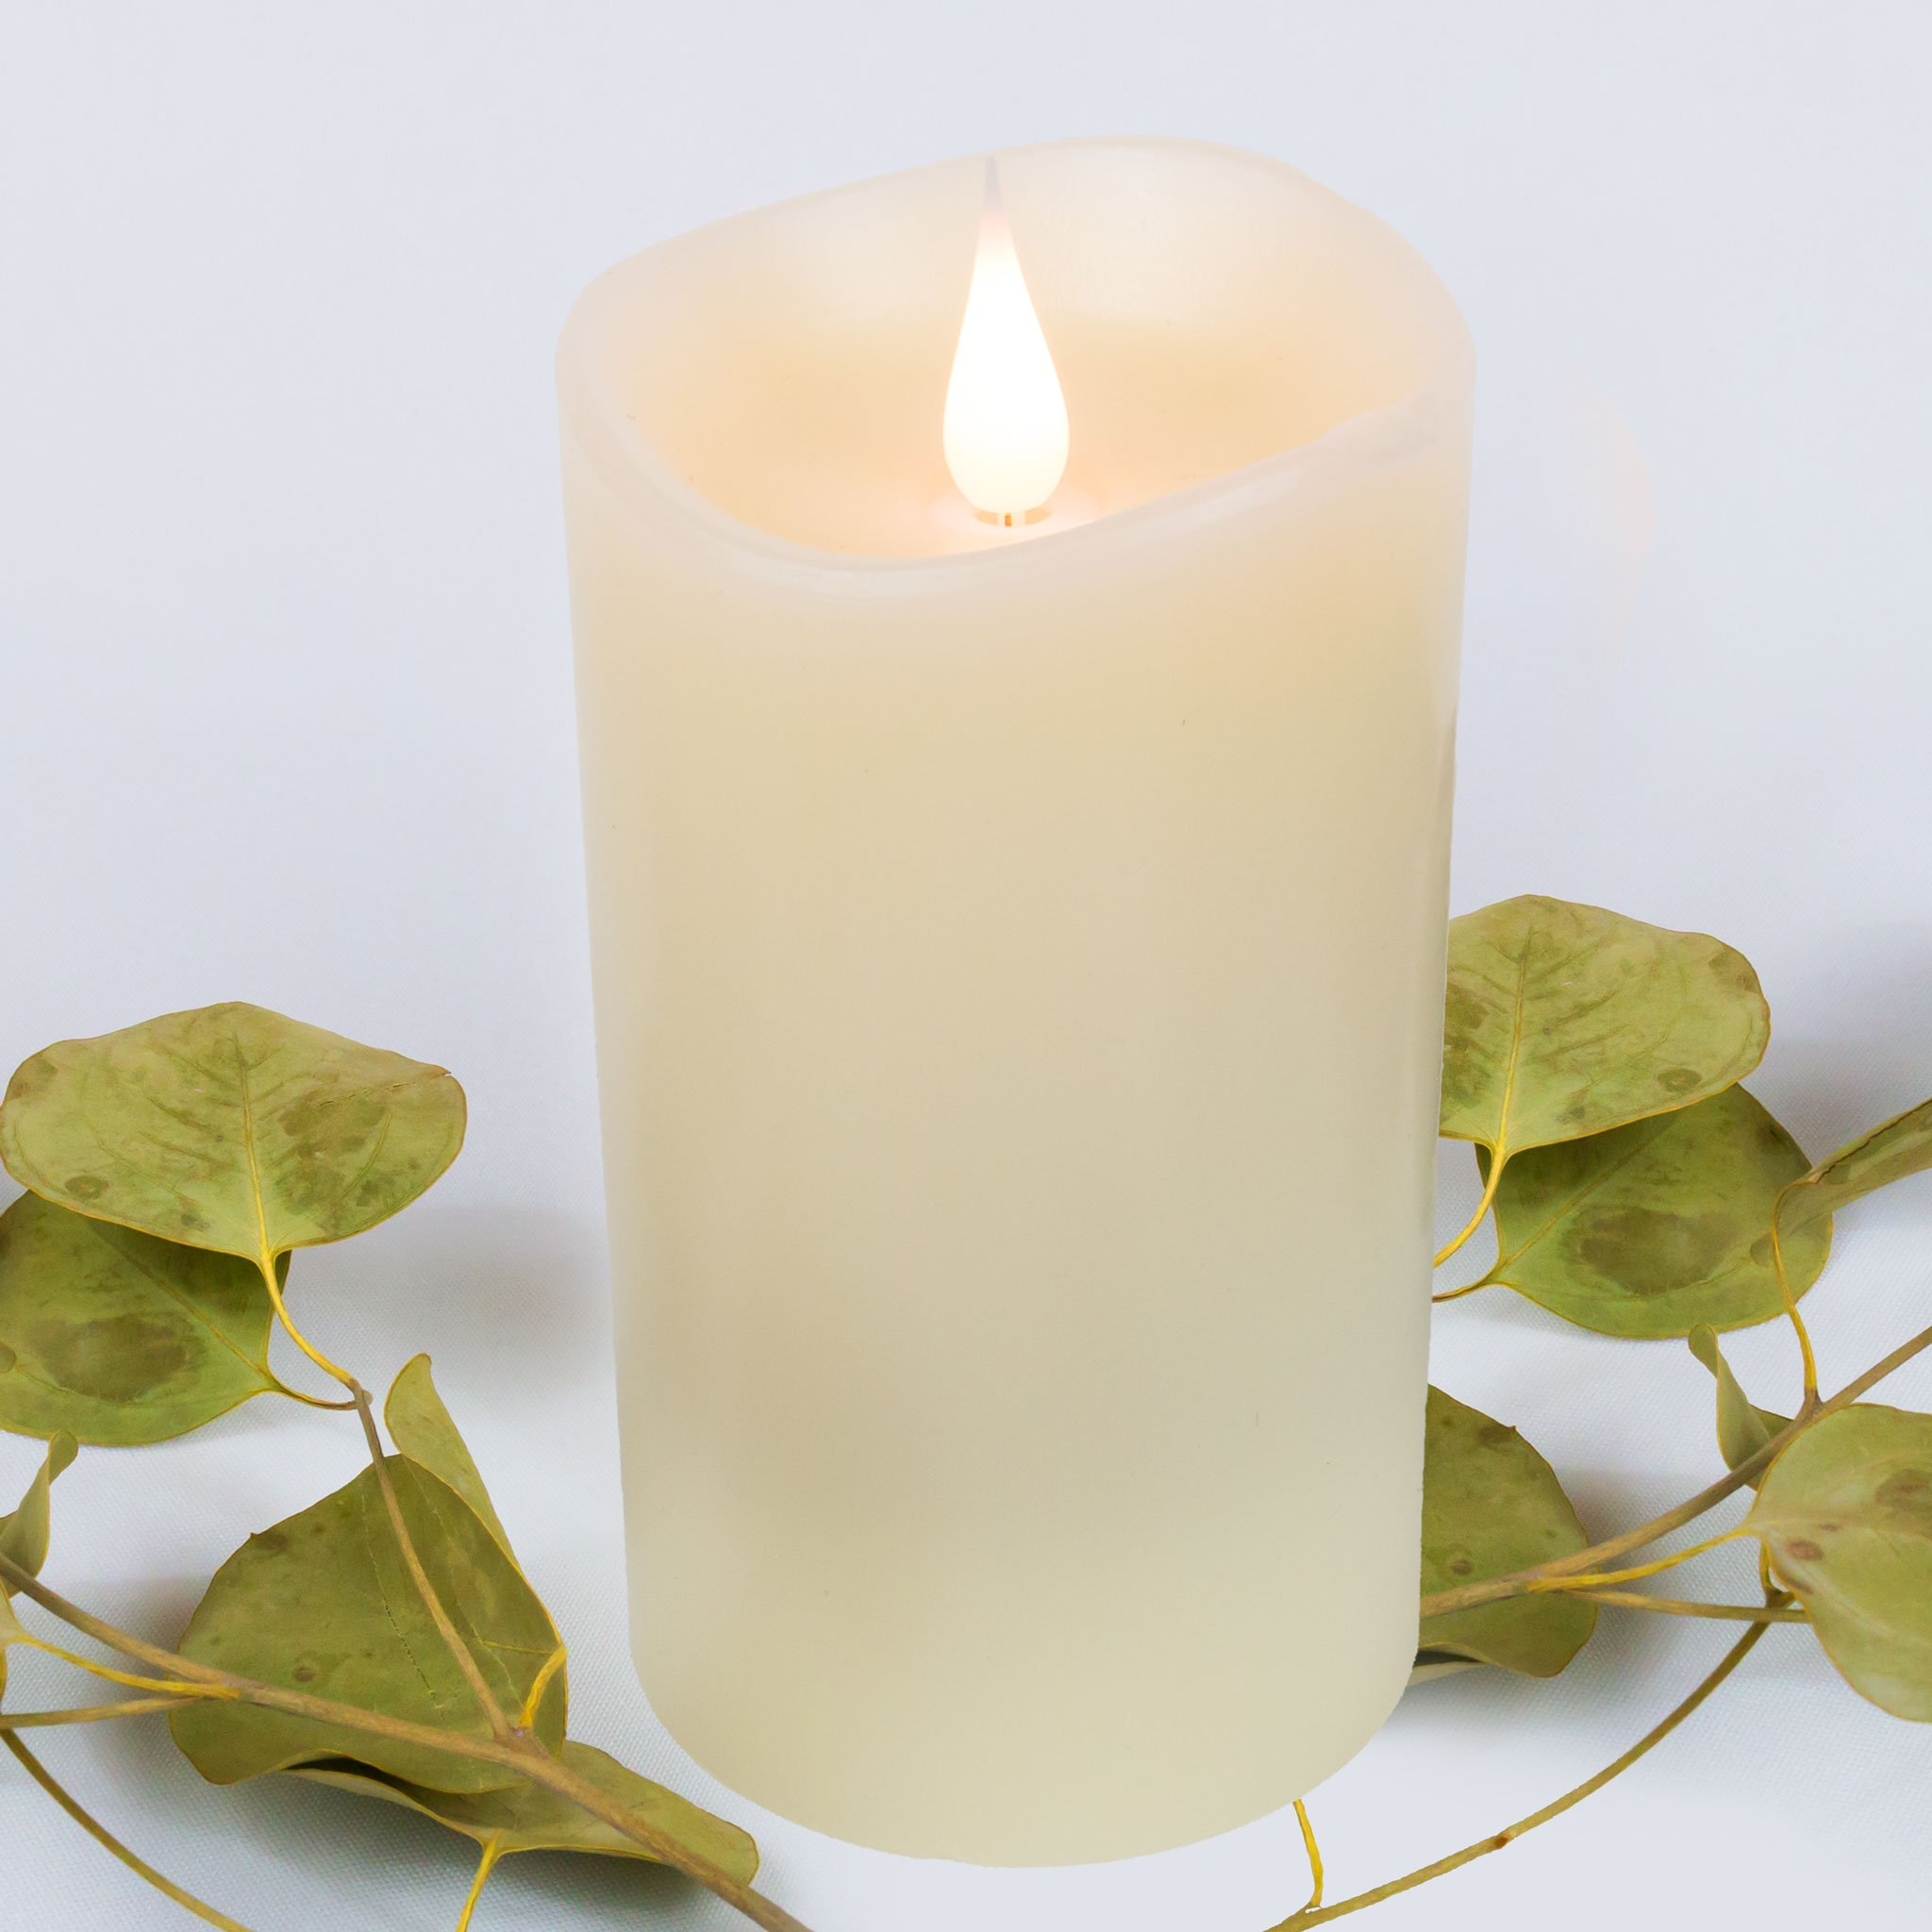 """FLAMELESS CANDLES Moving Flame LED Candle with Timer - Realistic 3D Flickering Light for Modern Home Decor, Battery Operated, Electric Votive Candle with Real Wax Pillar, Unscented, Ivory White, 3x5"""""""